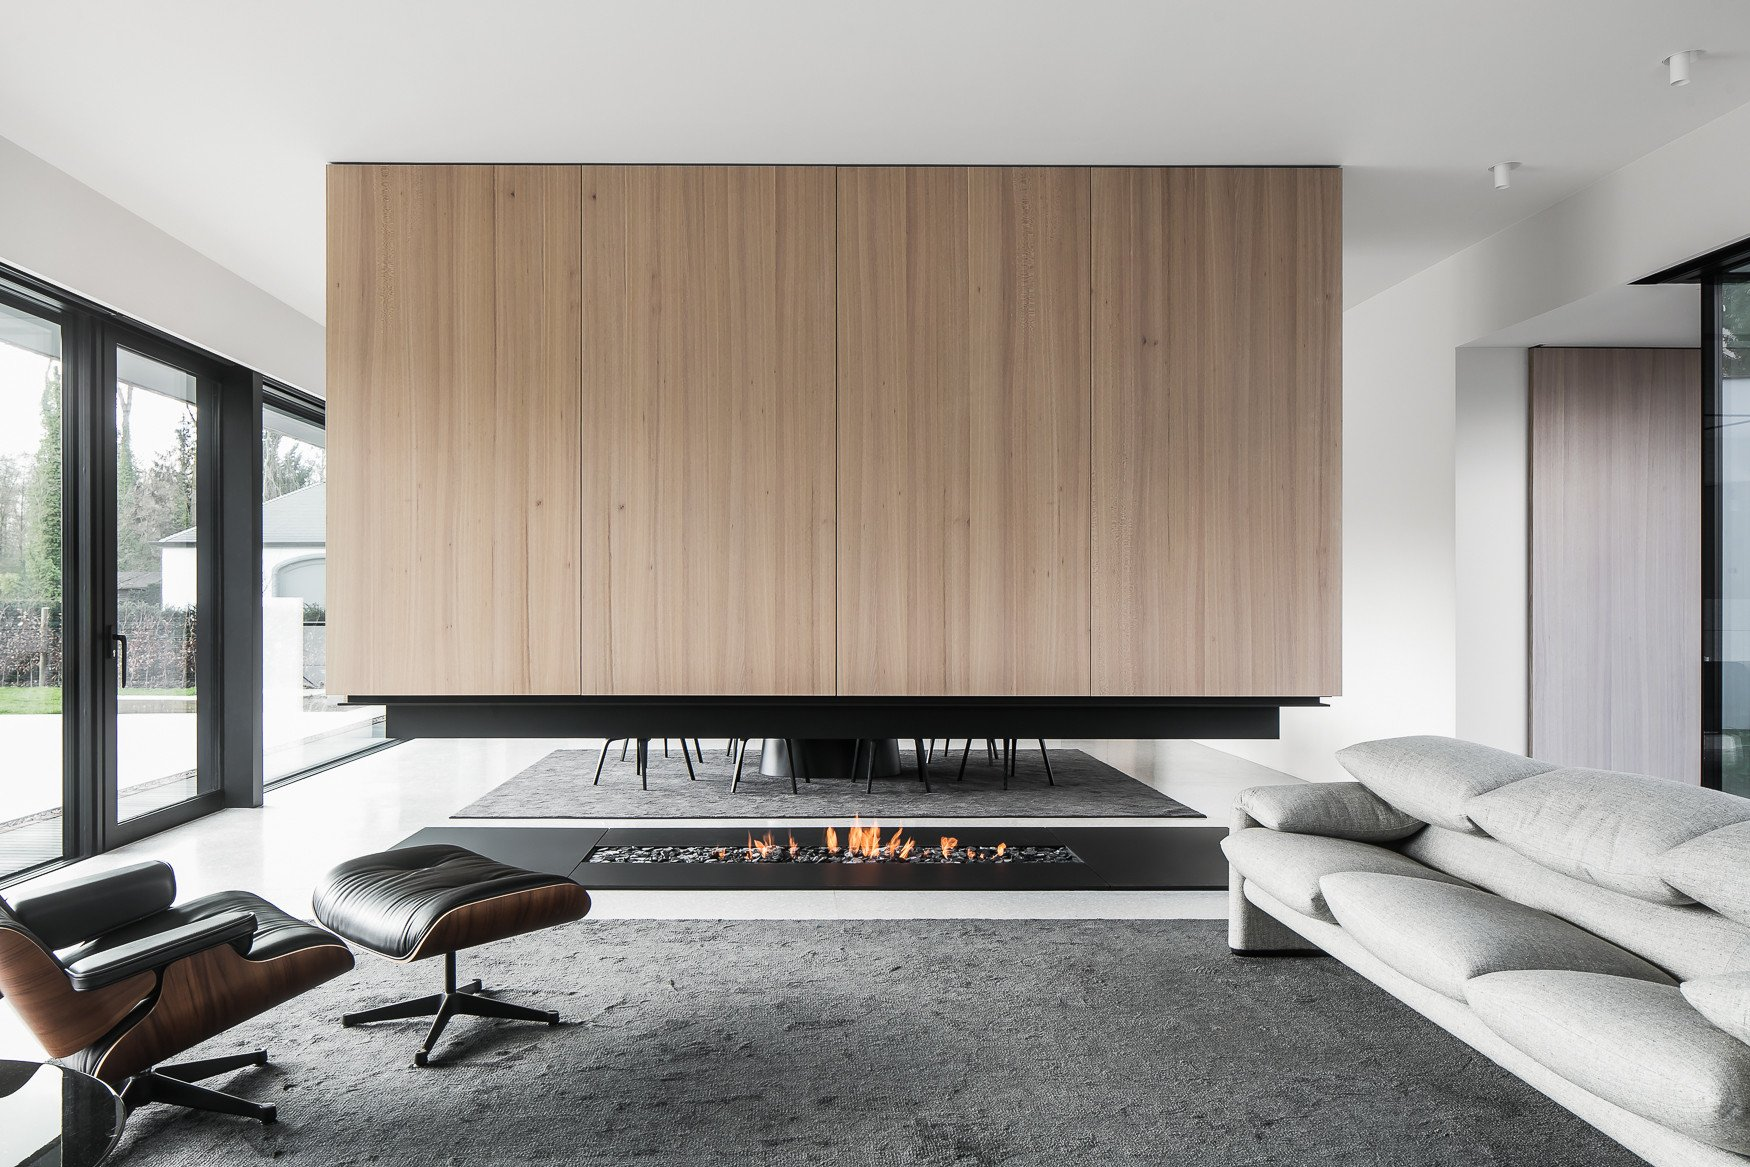 View of floating fire-place, dividing kitchen area from living room. Thomas De Bruyne (Cafeine.be)